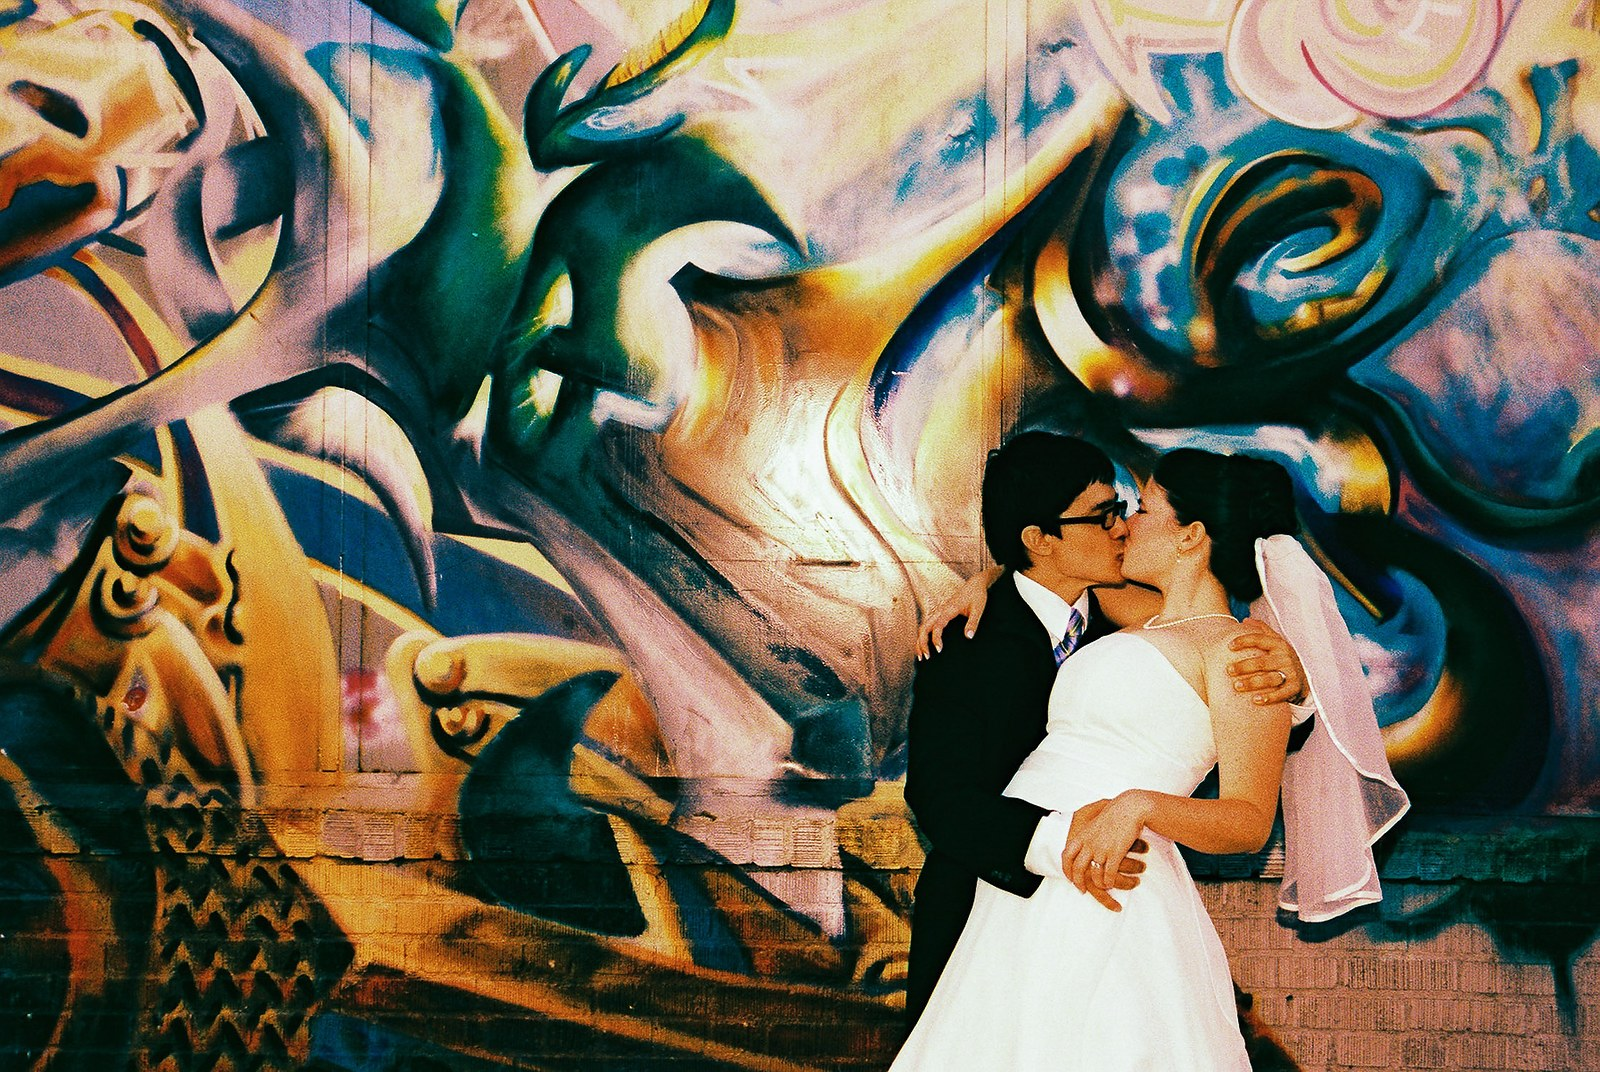 graffiti at office ops brooklyn and couple kissing